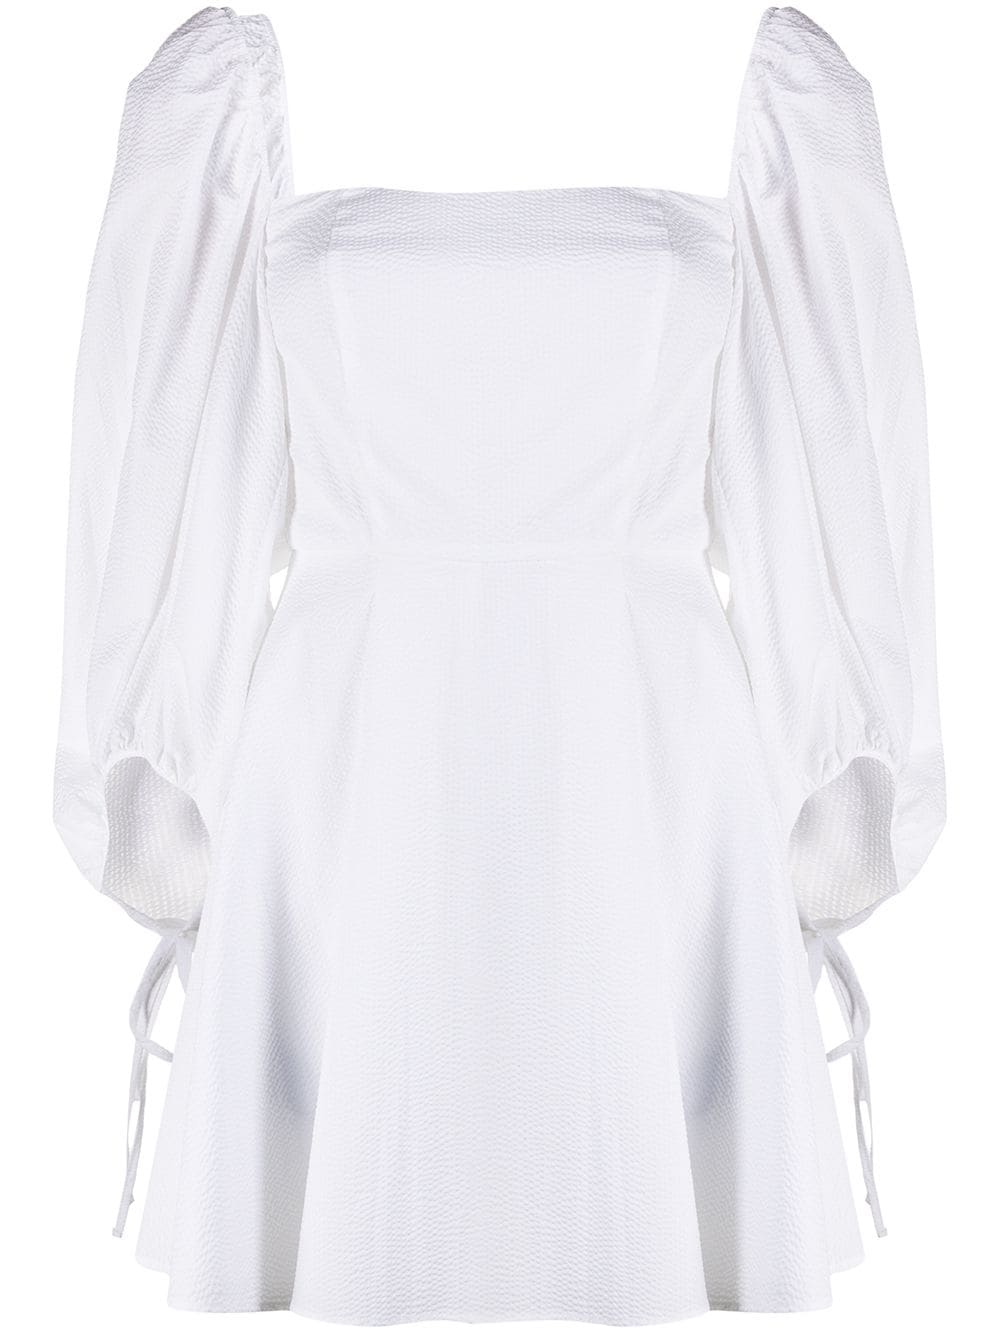 FEDERICA TOSI | Dress | FTE21AB023.0PP00460001